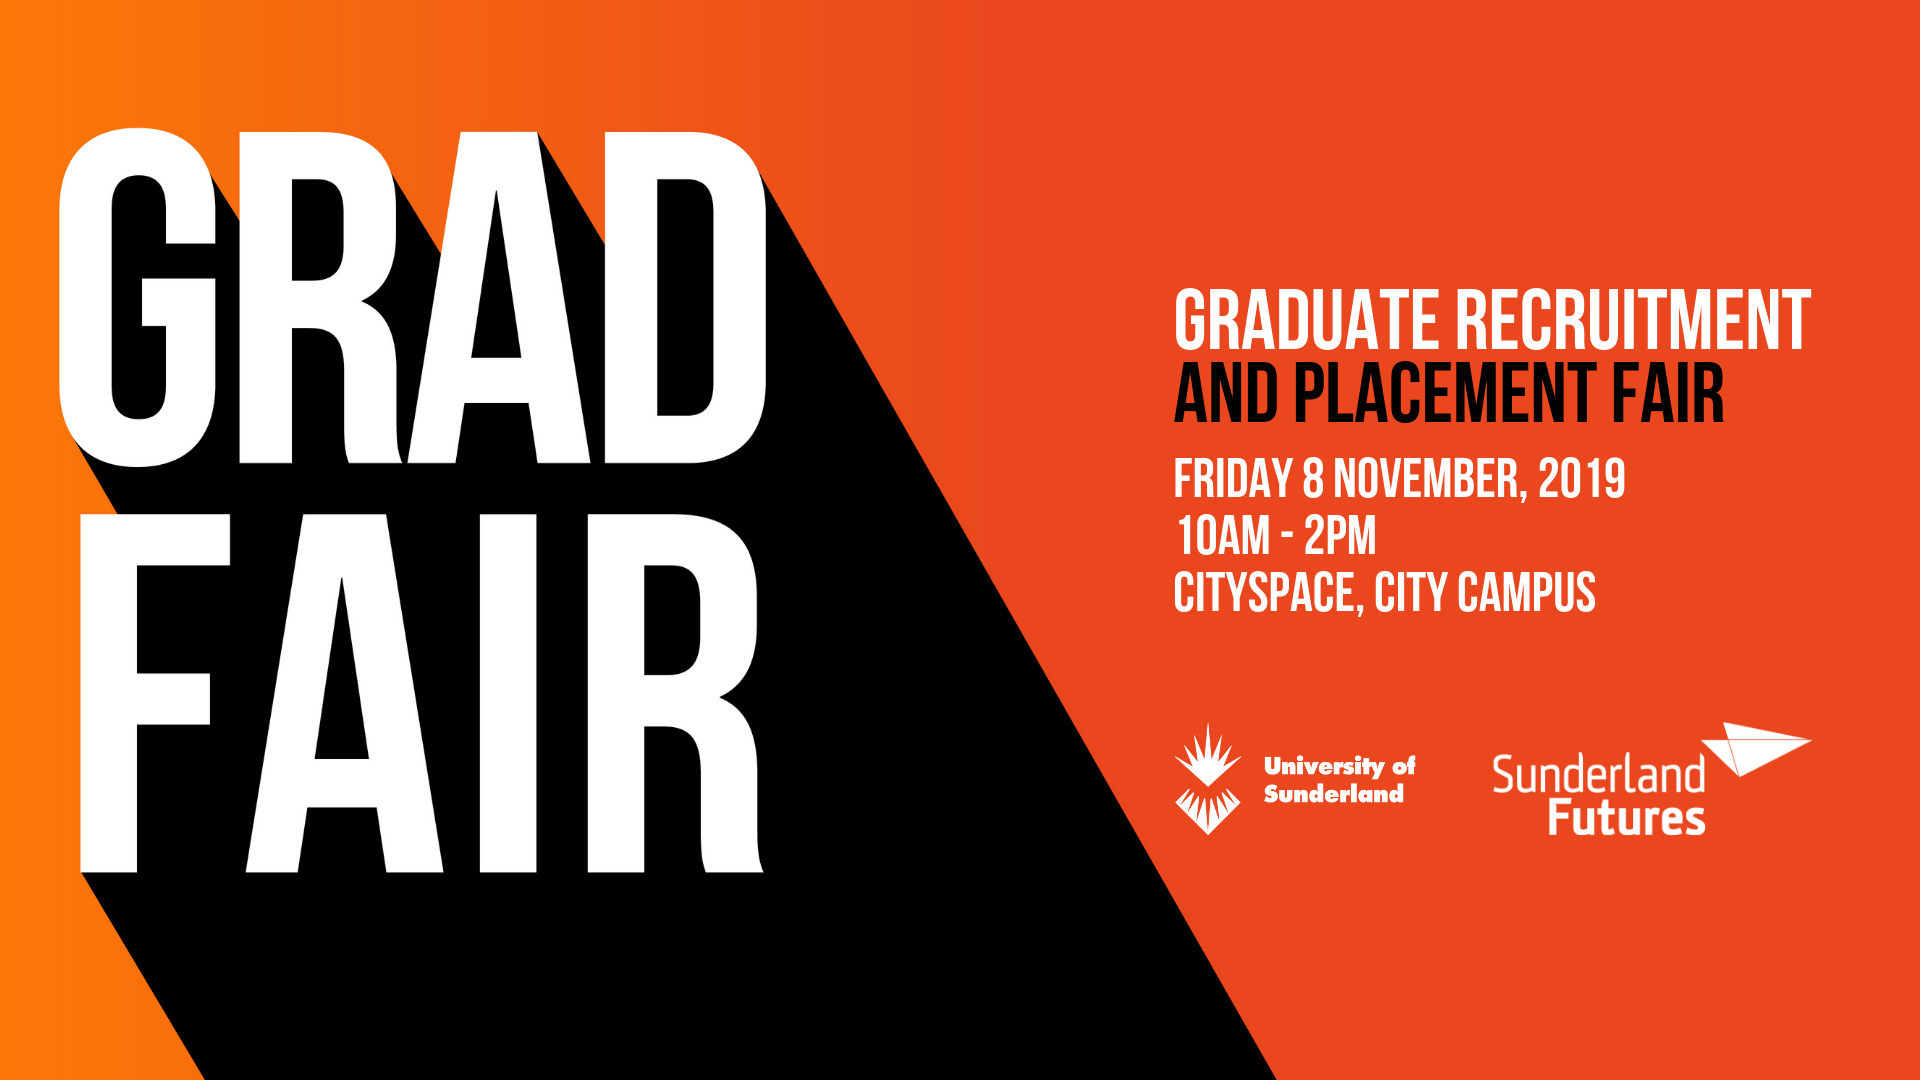 Graduate Recruitment & Placement Fair 2019